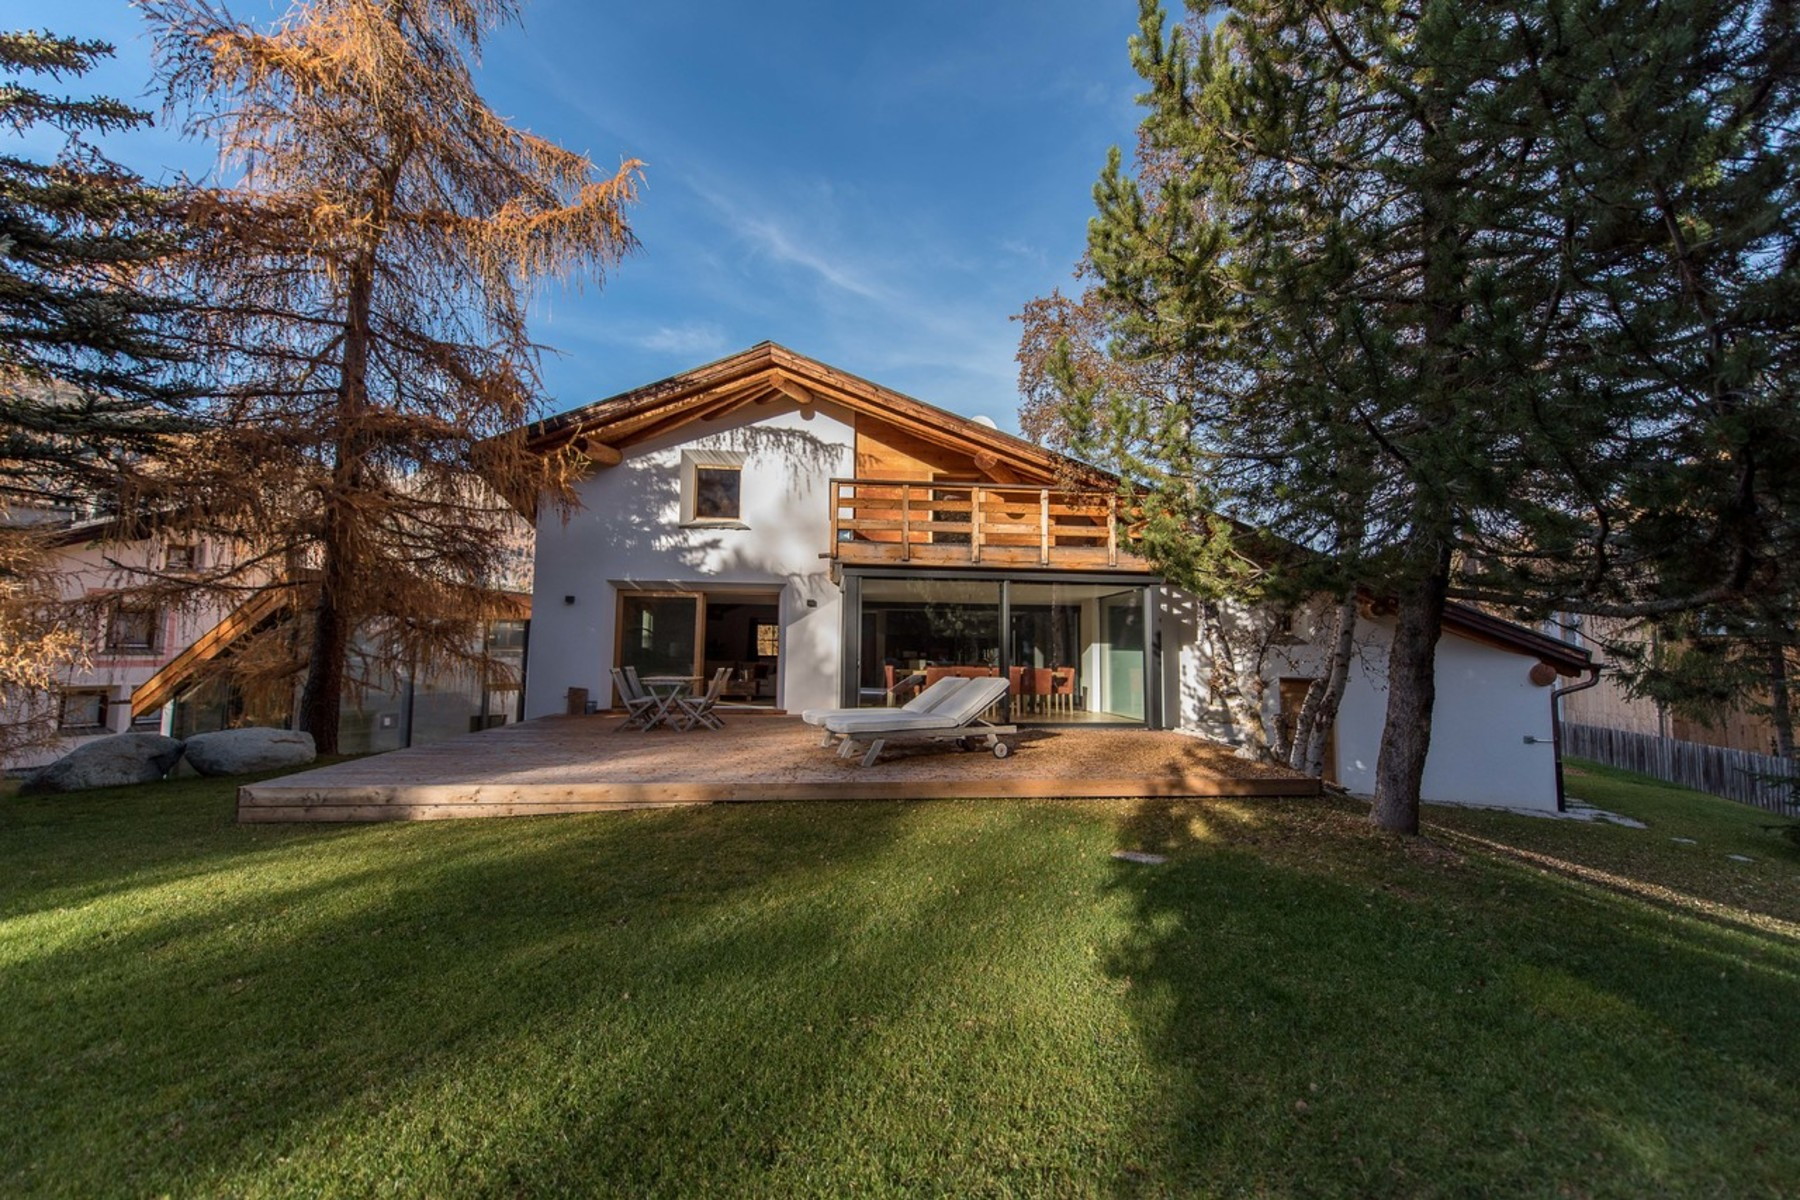 獨棟家庭住宅 為 出售 在 Beautiful villa in an idyllic location with spa area La Punt-Chamues-ch Other Switzerland, 瑞士的其他地區, 7522 瑞士